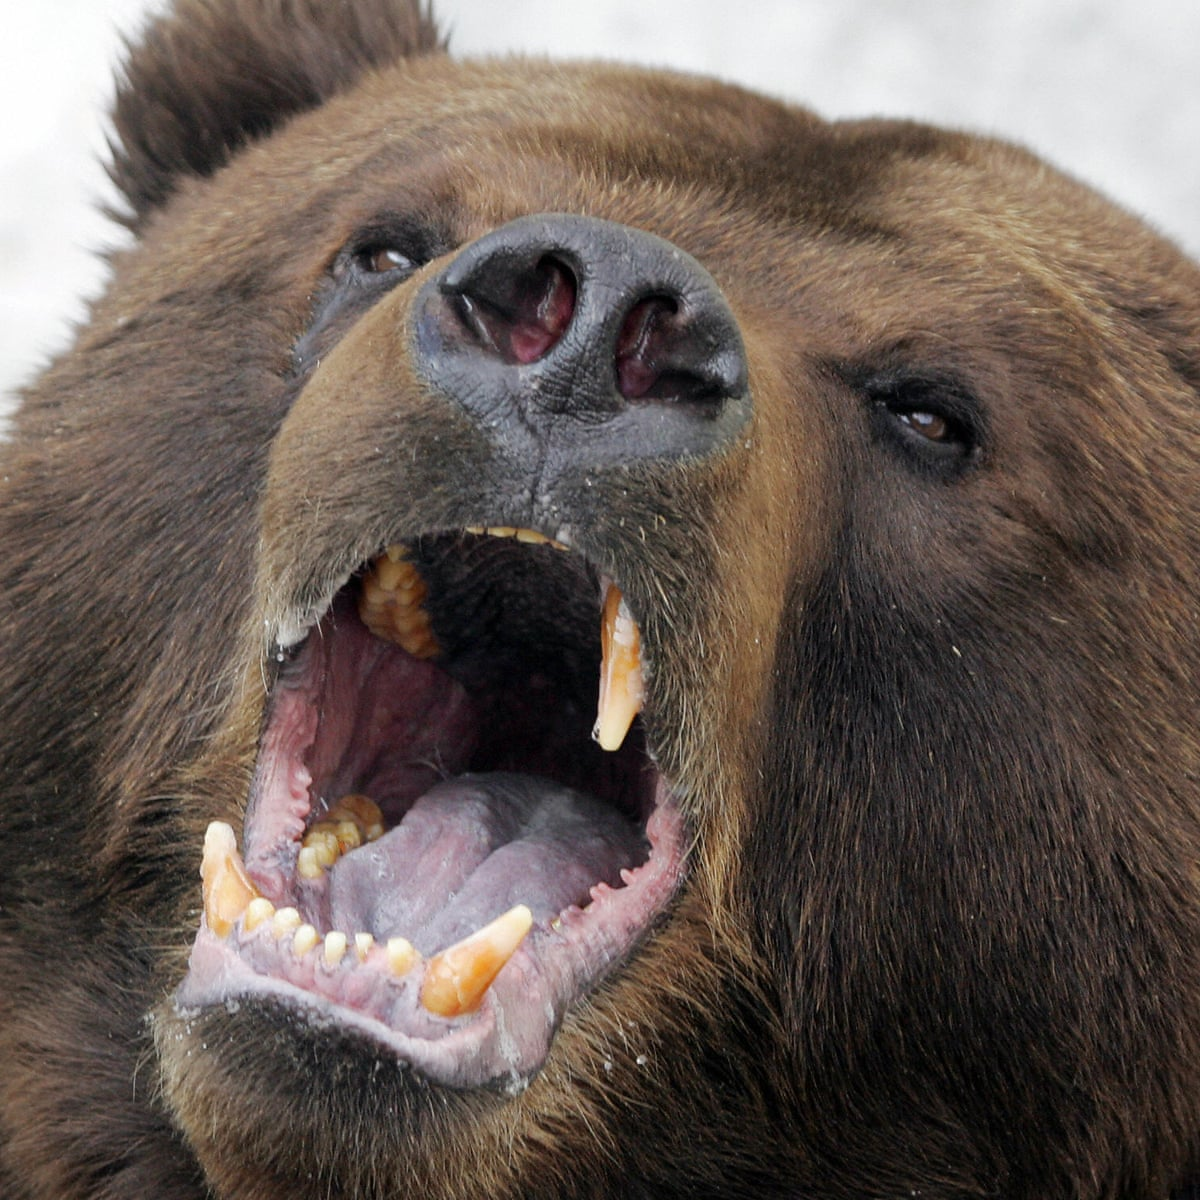 Russian town besieged by hungry bears | Russia | The Guardian